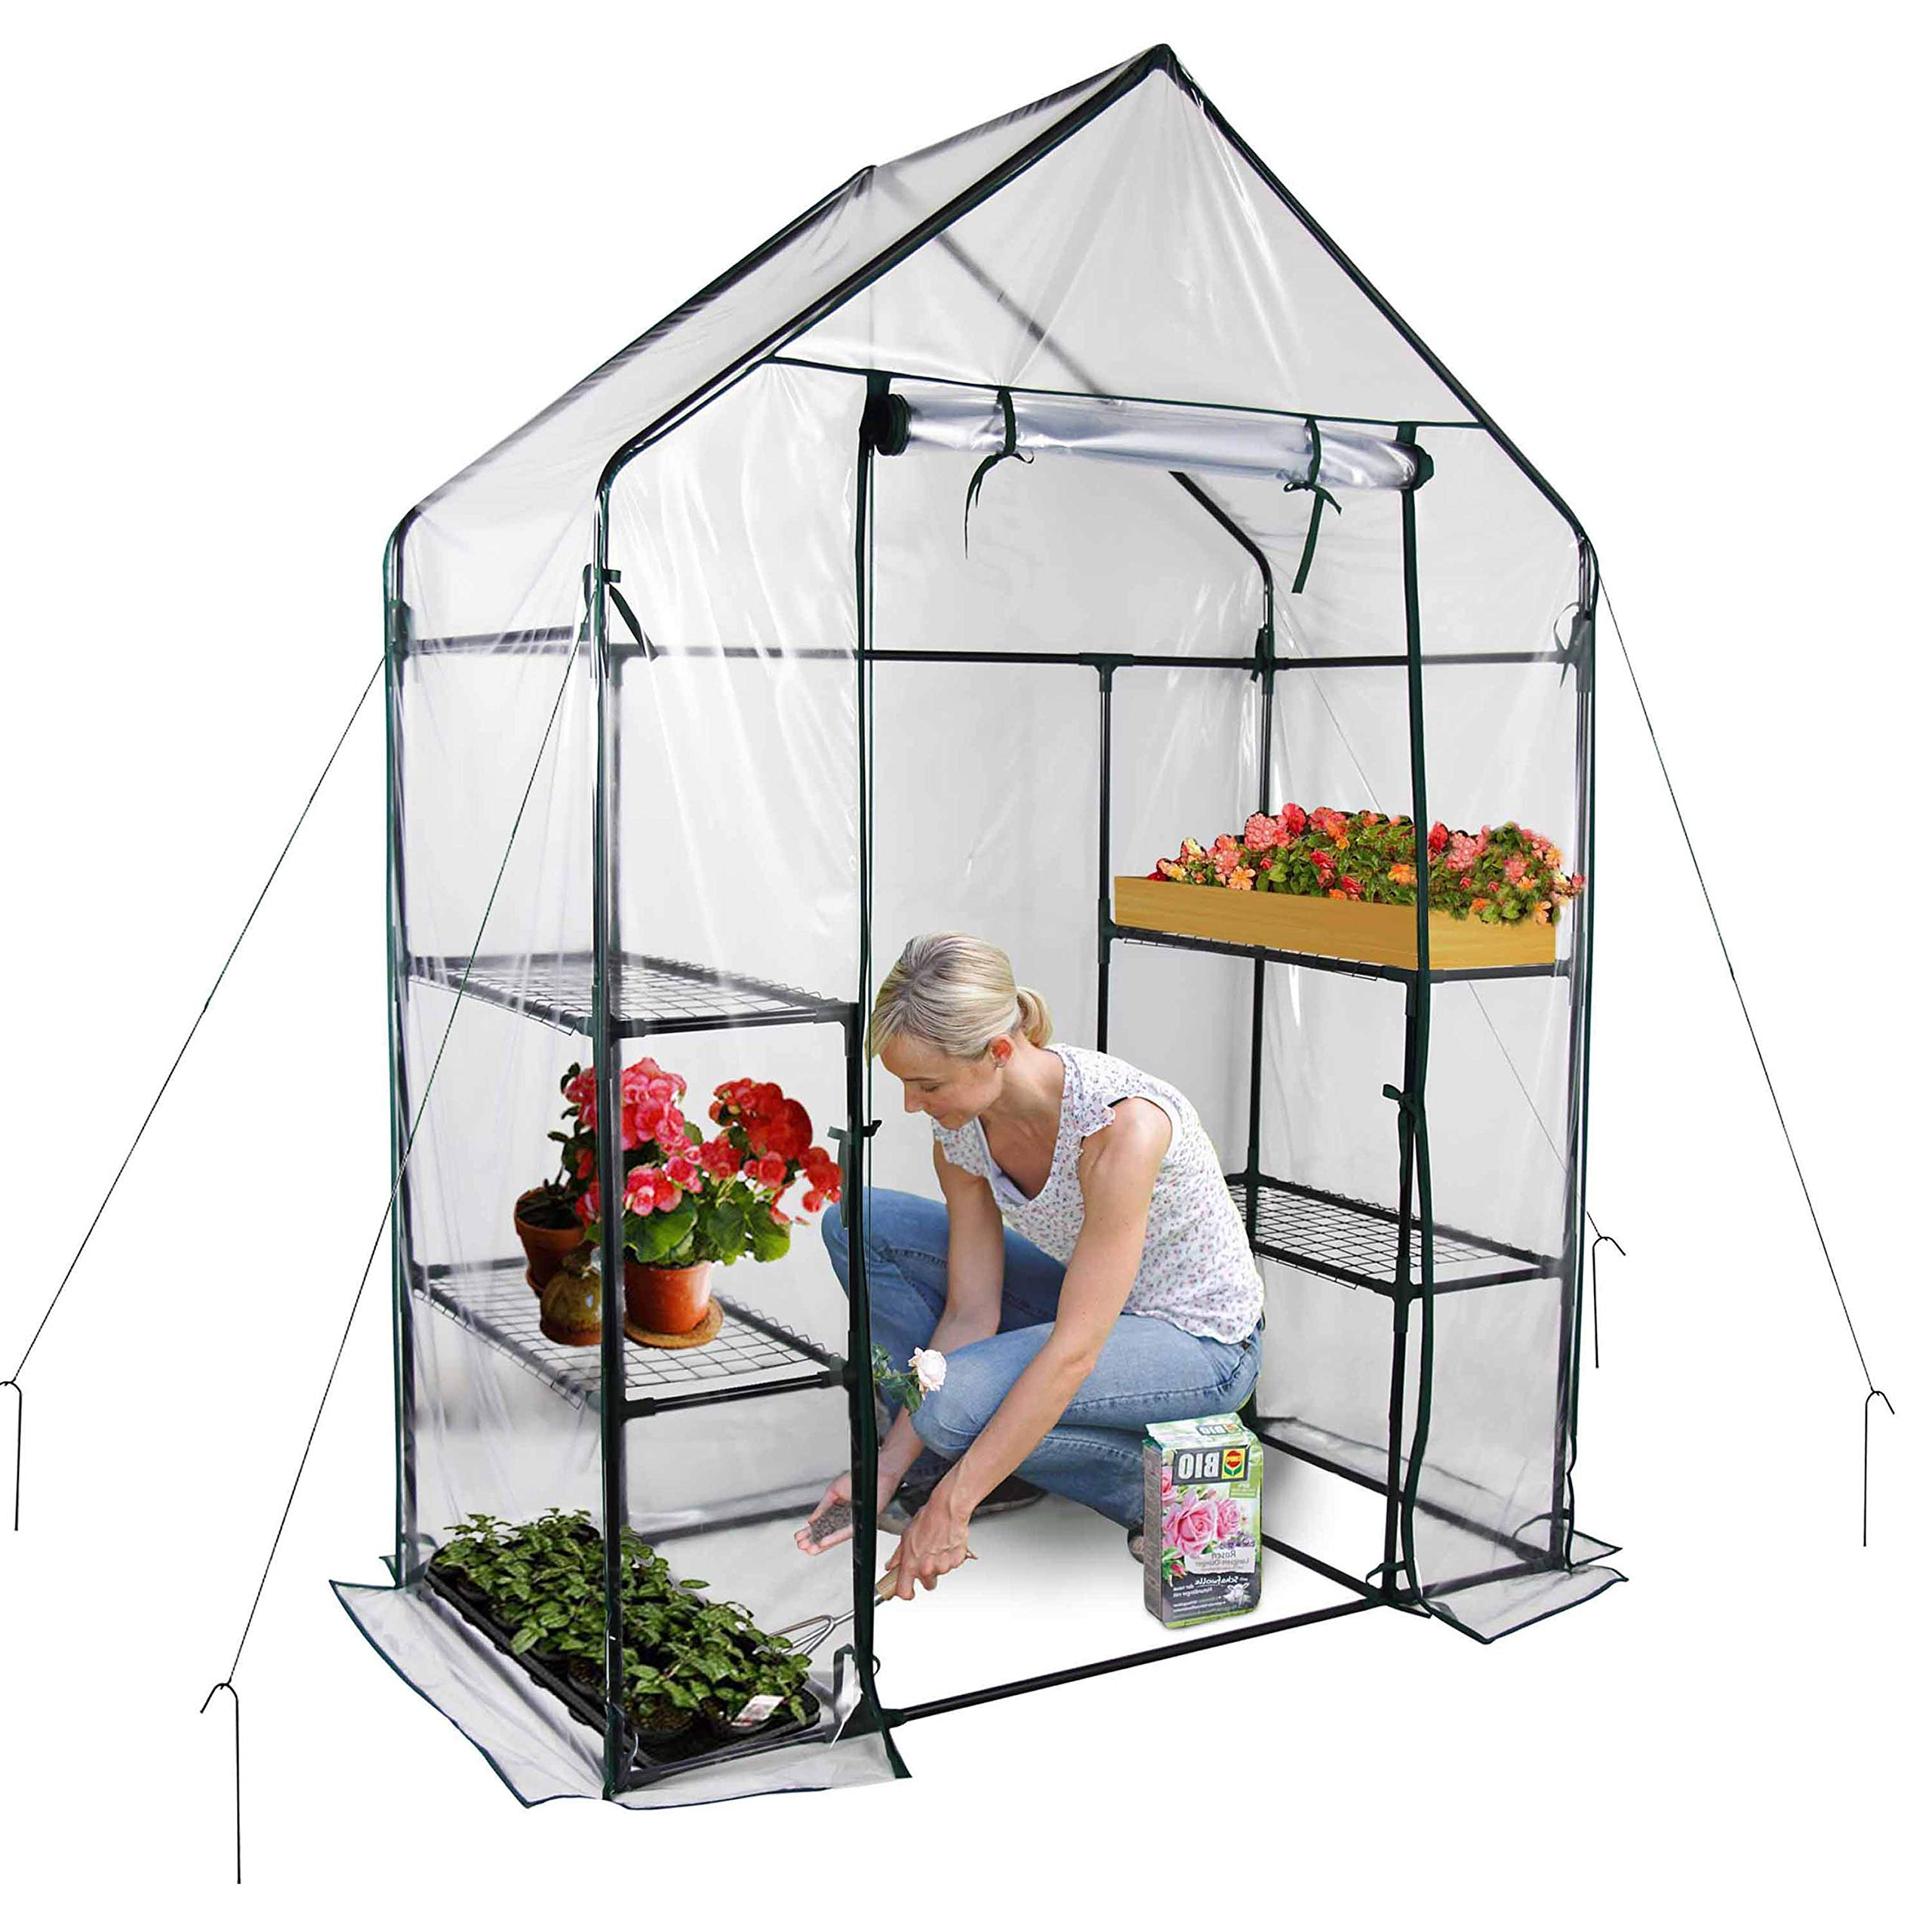 Gosunny Walk in Greenhouse with Clear Cover - 3 Tiers 6 Shelves - Herb and Flower Garden Green House 56'' W x 29'' D x 77'' H (56'' W x 29'' D x 77'' H)